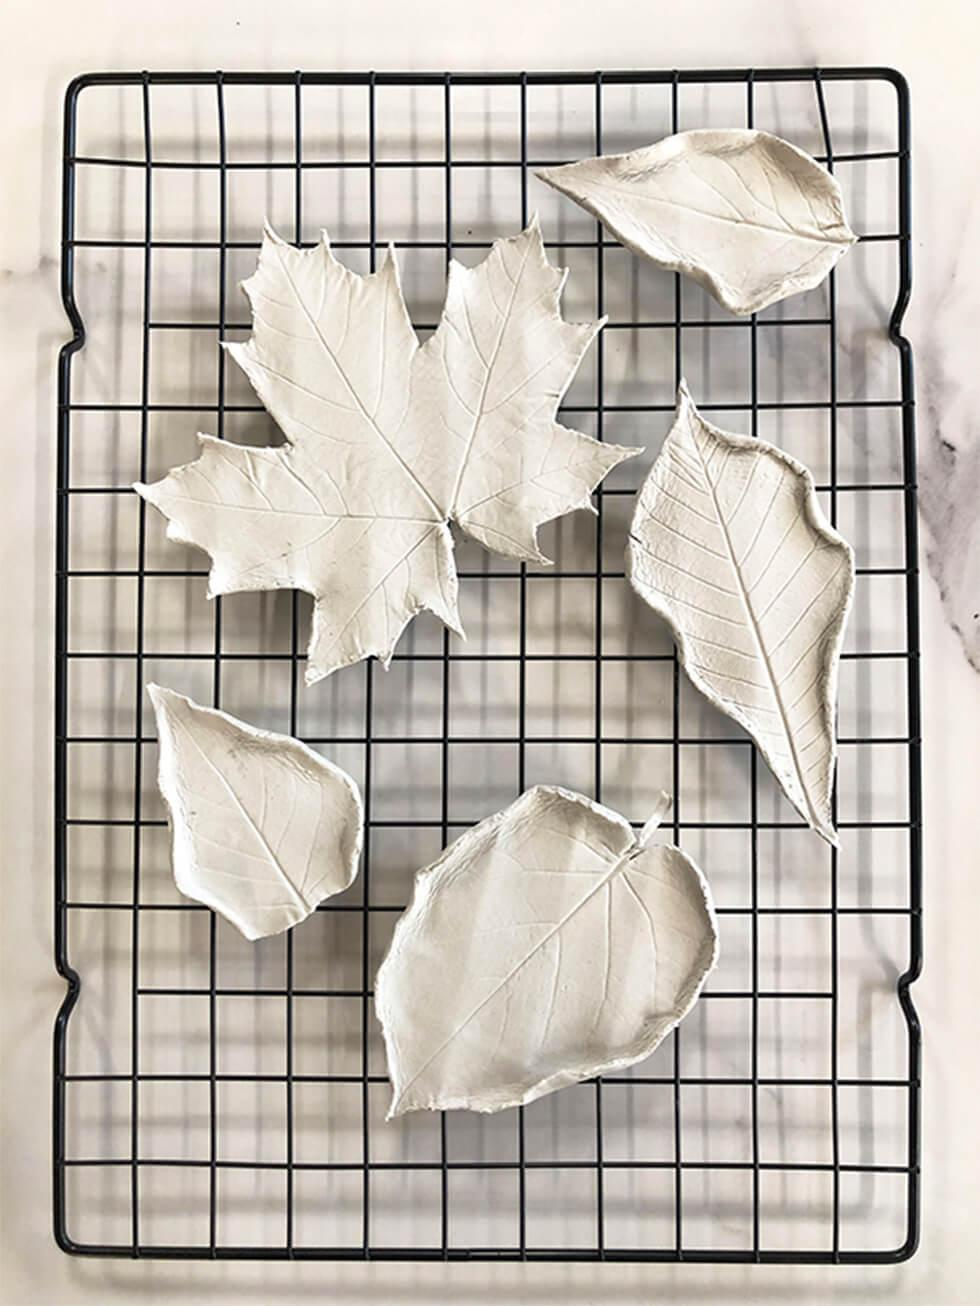 DIY leaf-shaped metallic trinket dish - Step 3 - Gently curl up the sides of the dish with your fingers to form a shallow edge and leave to dry overnight